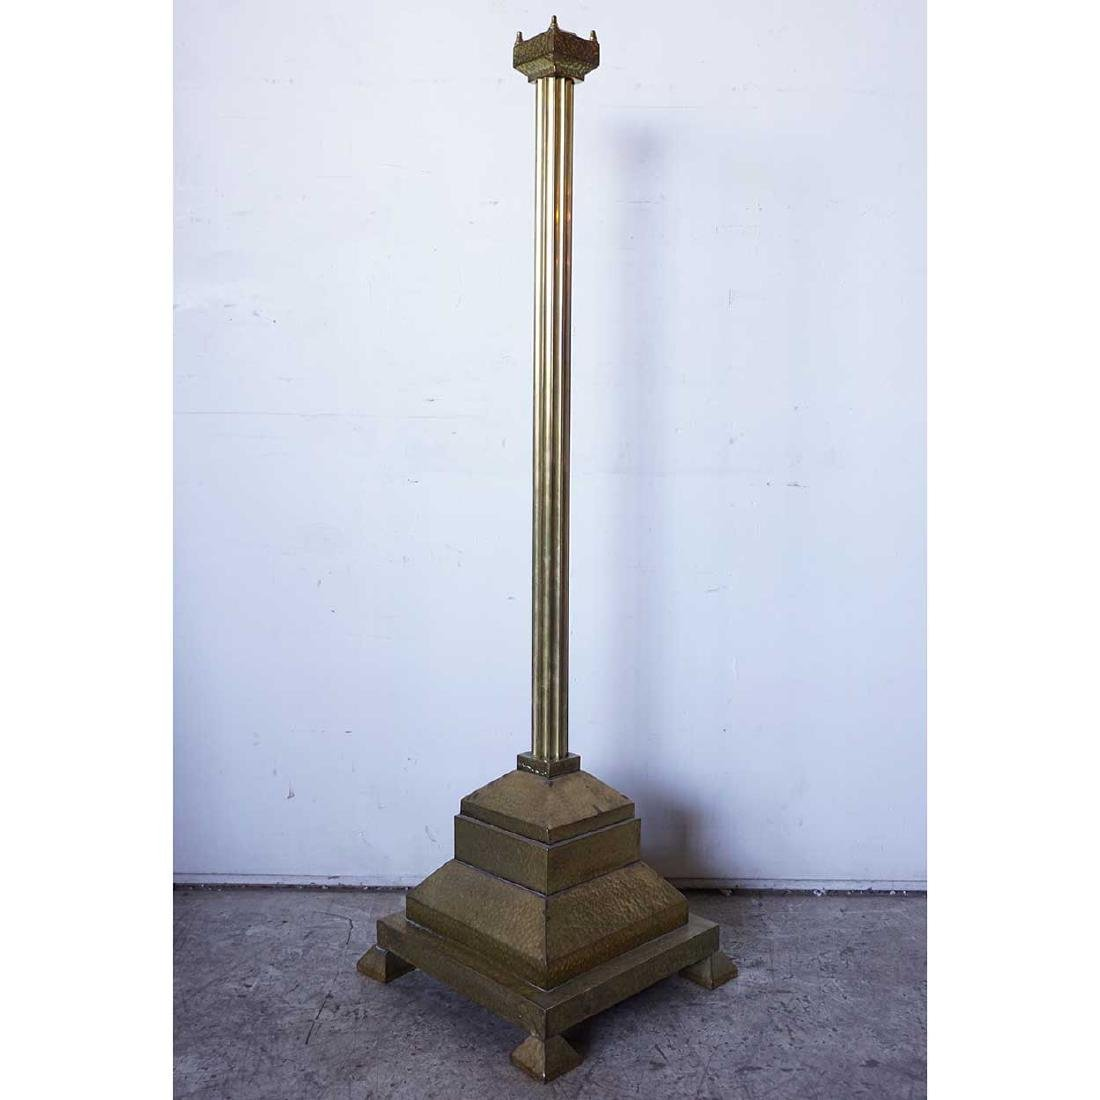 Antique Arts and Crafts Hammered Brass Floor Lamp